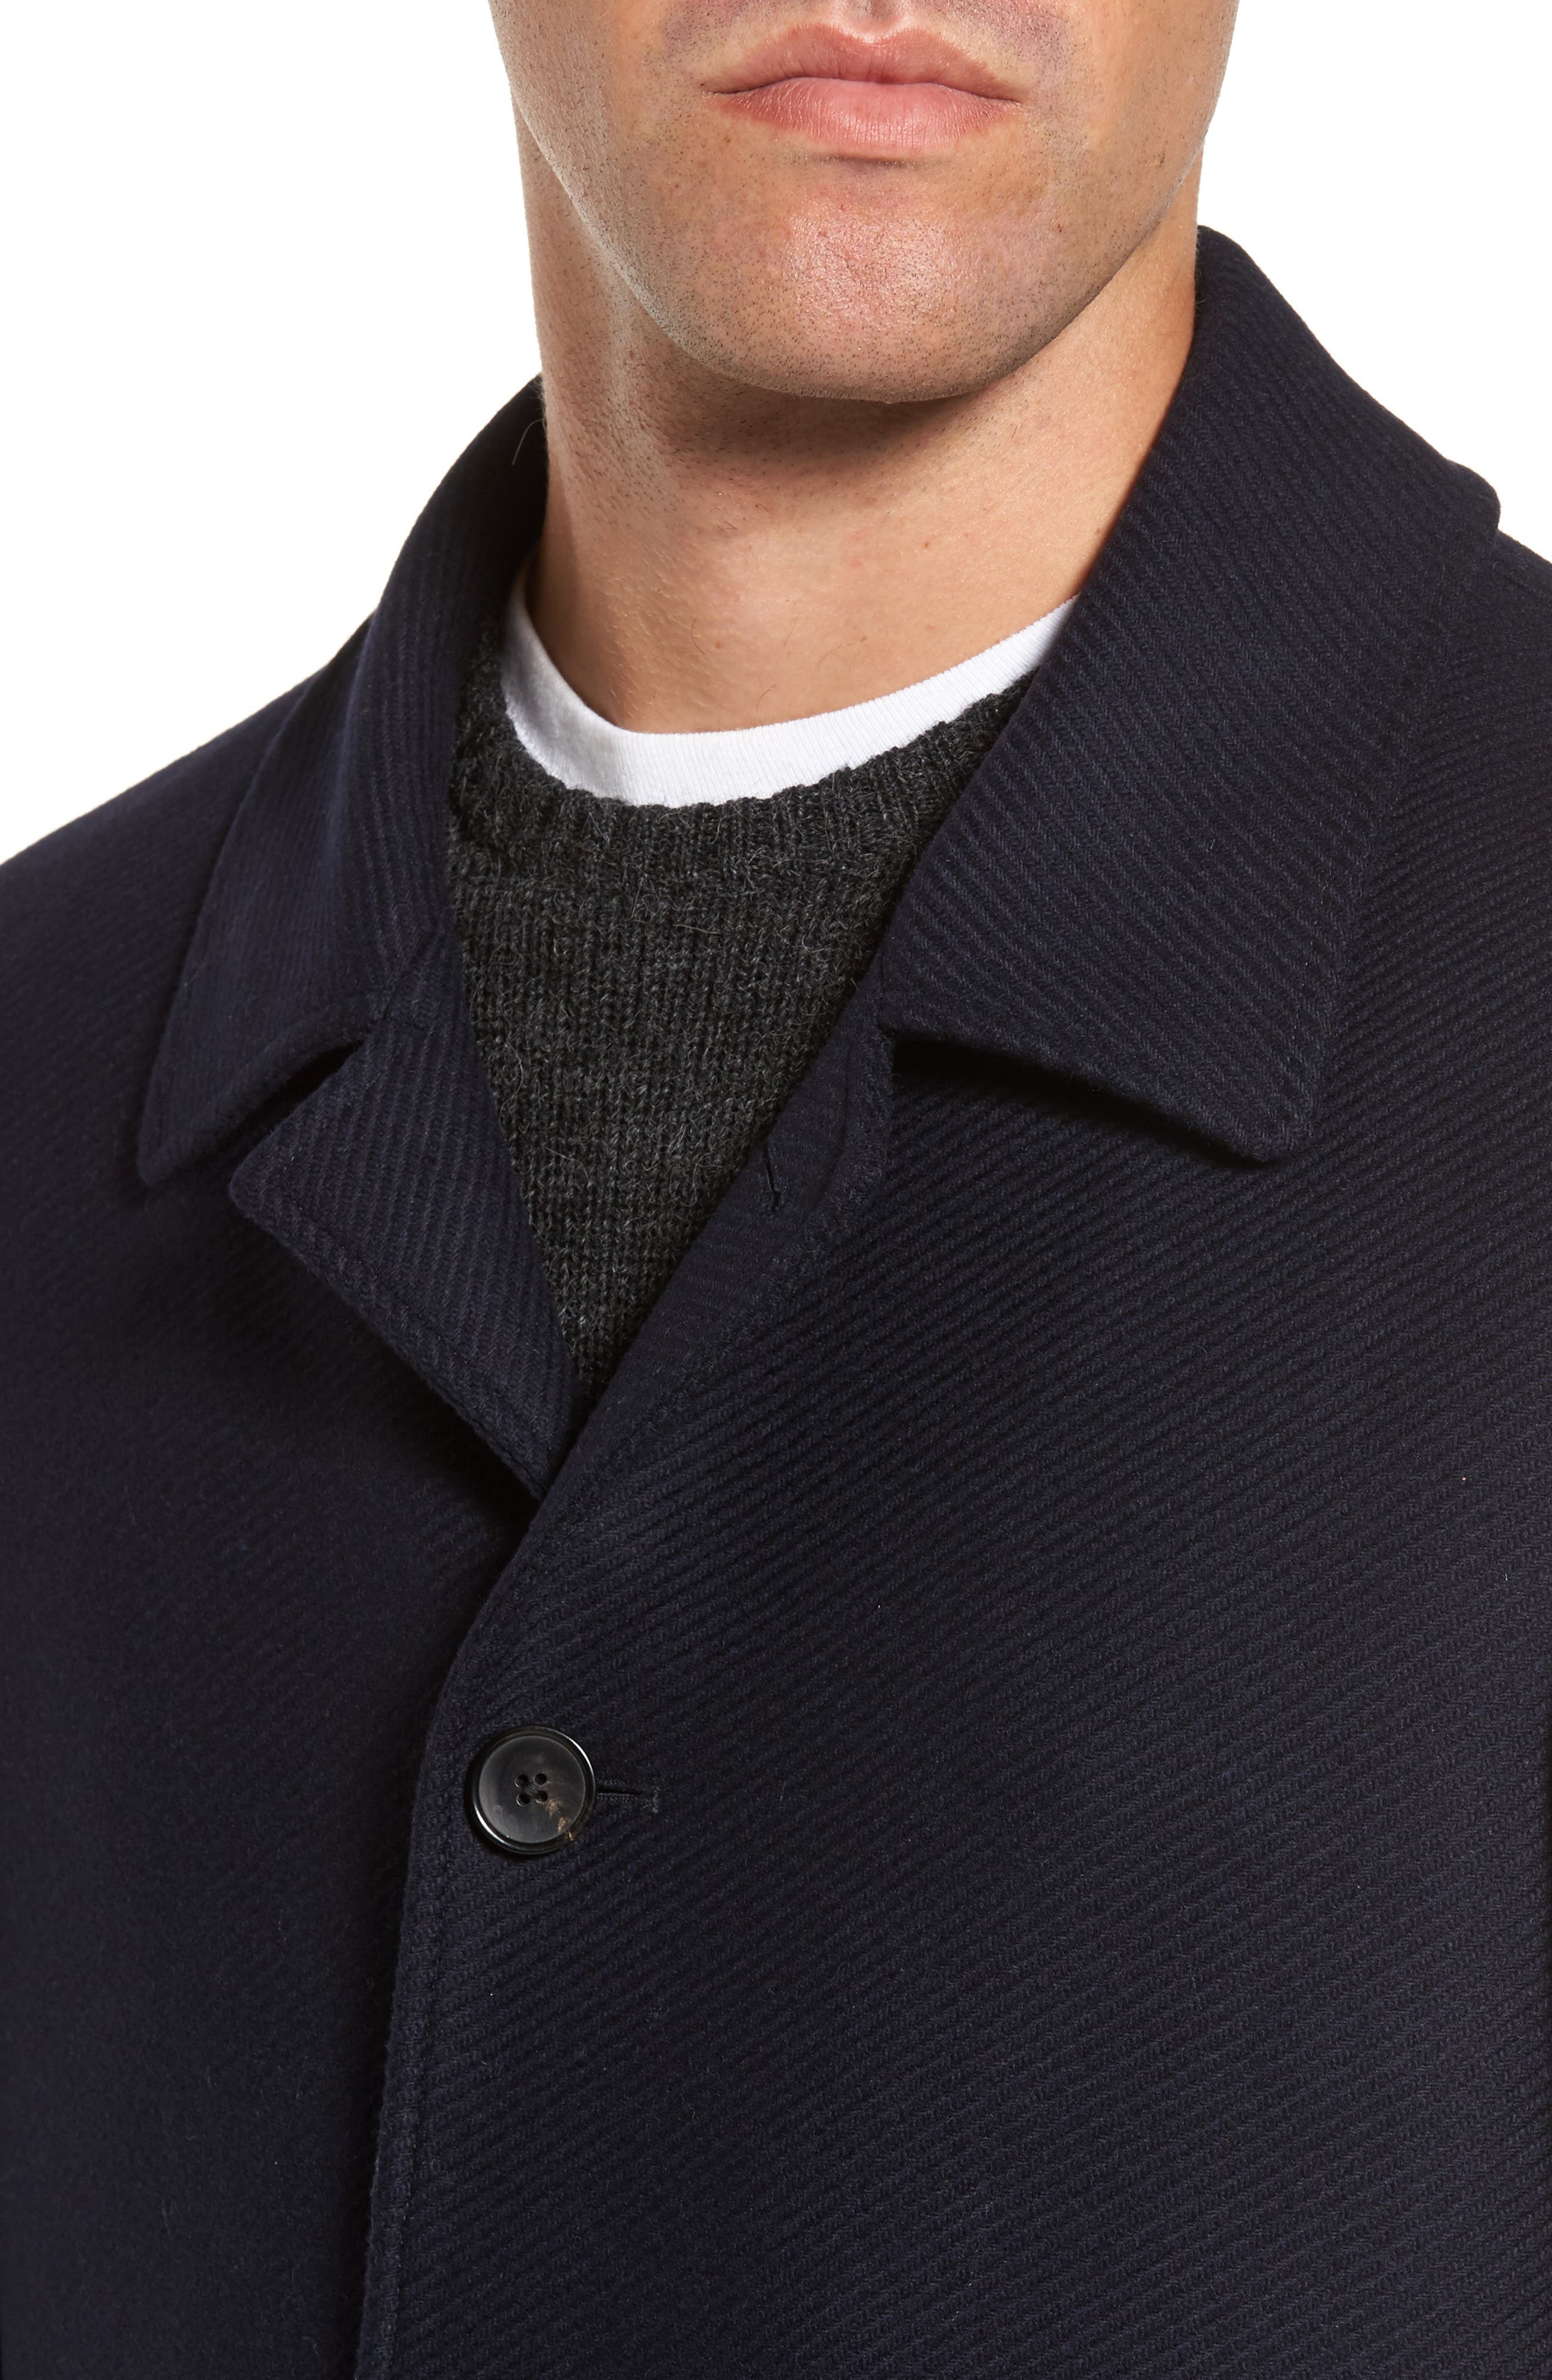 Christchurch Wool Blend Jacket,                             Alternate thumbnail 4, color,                             412